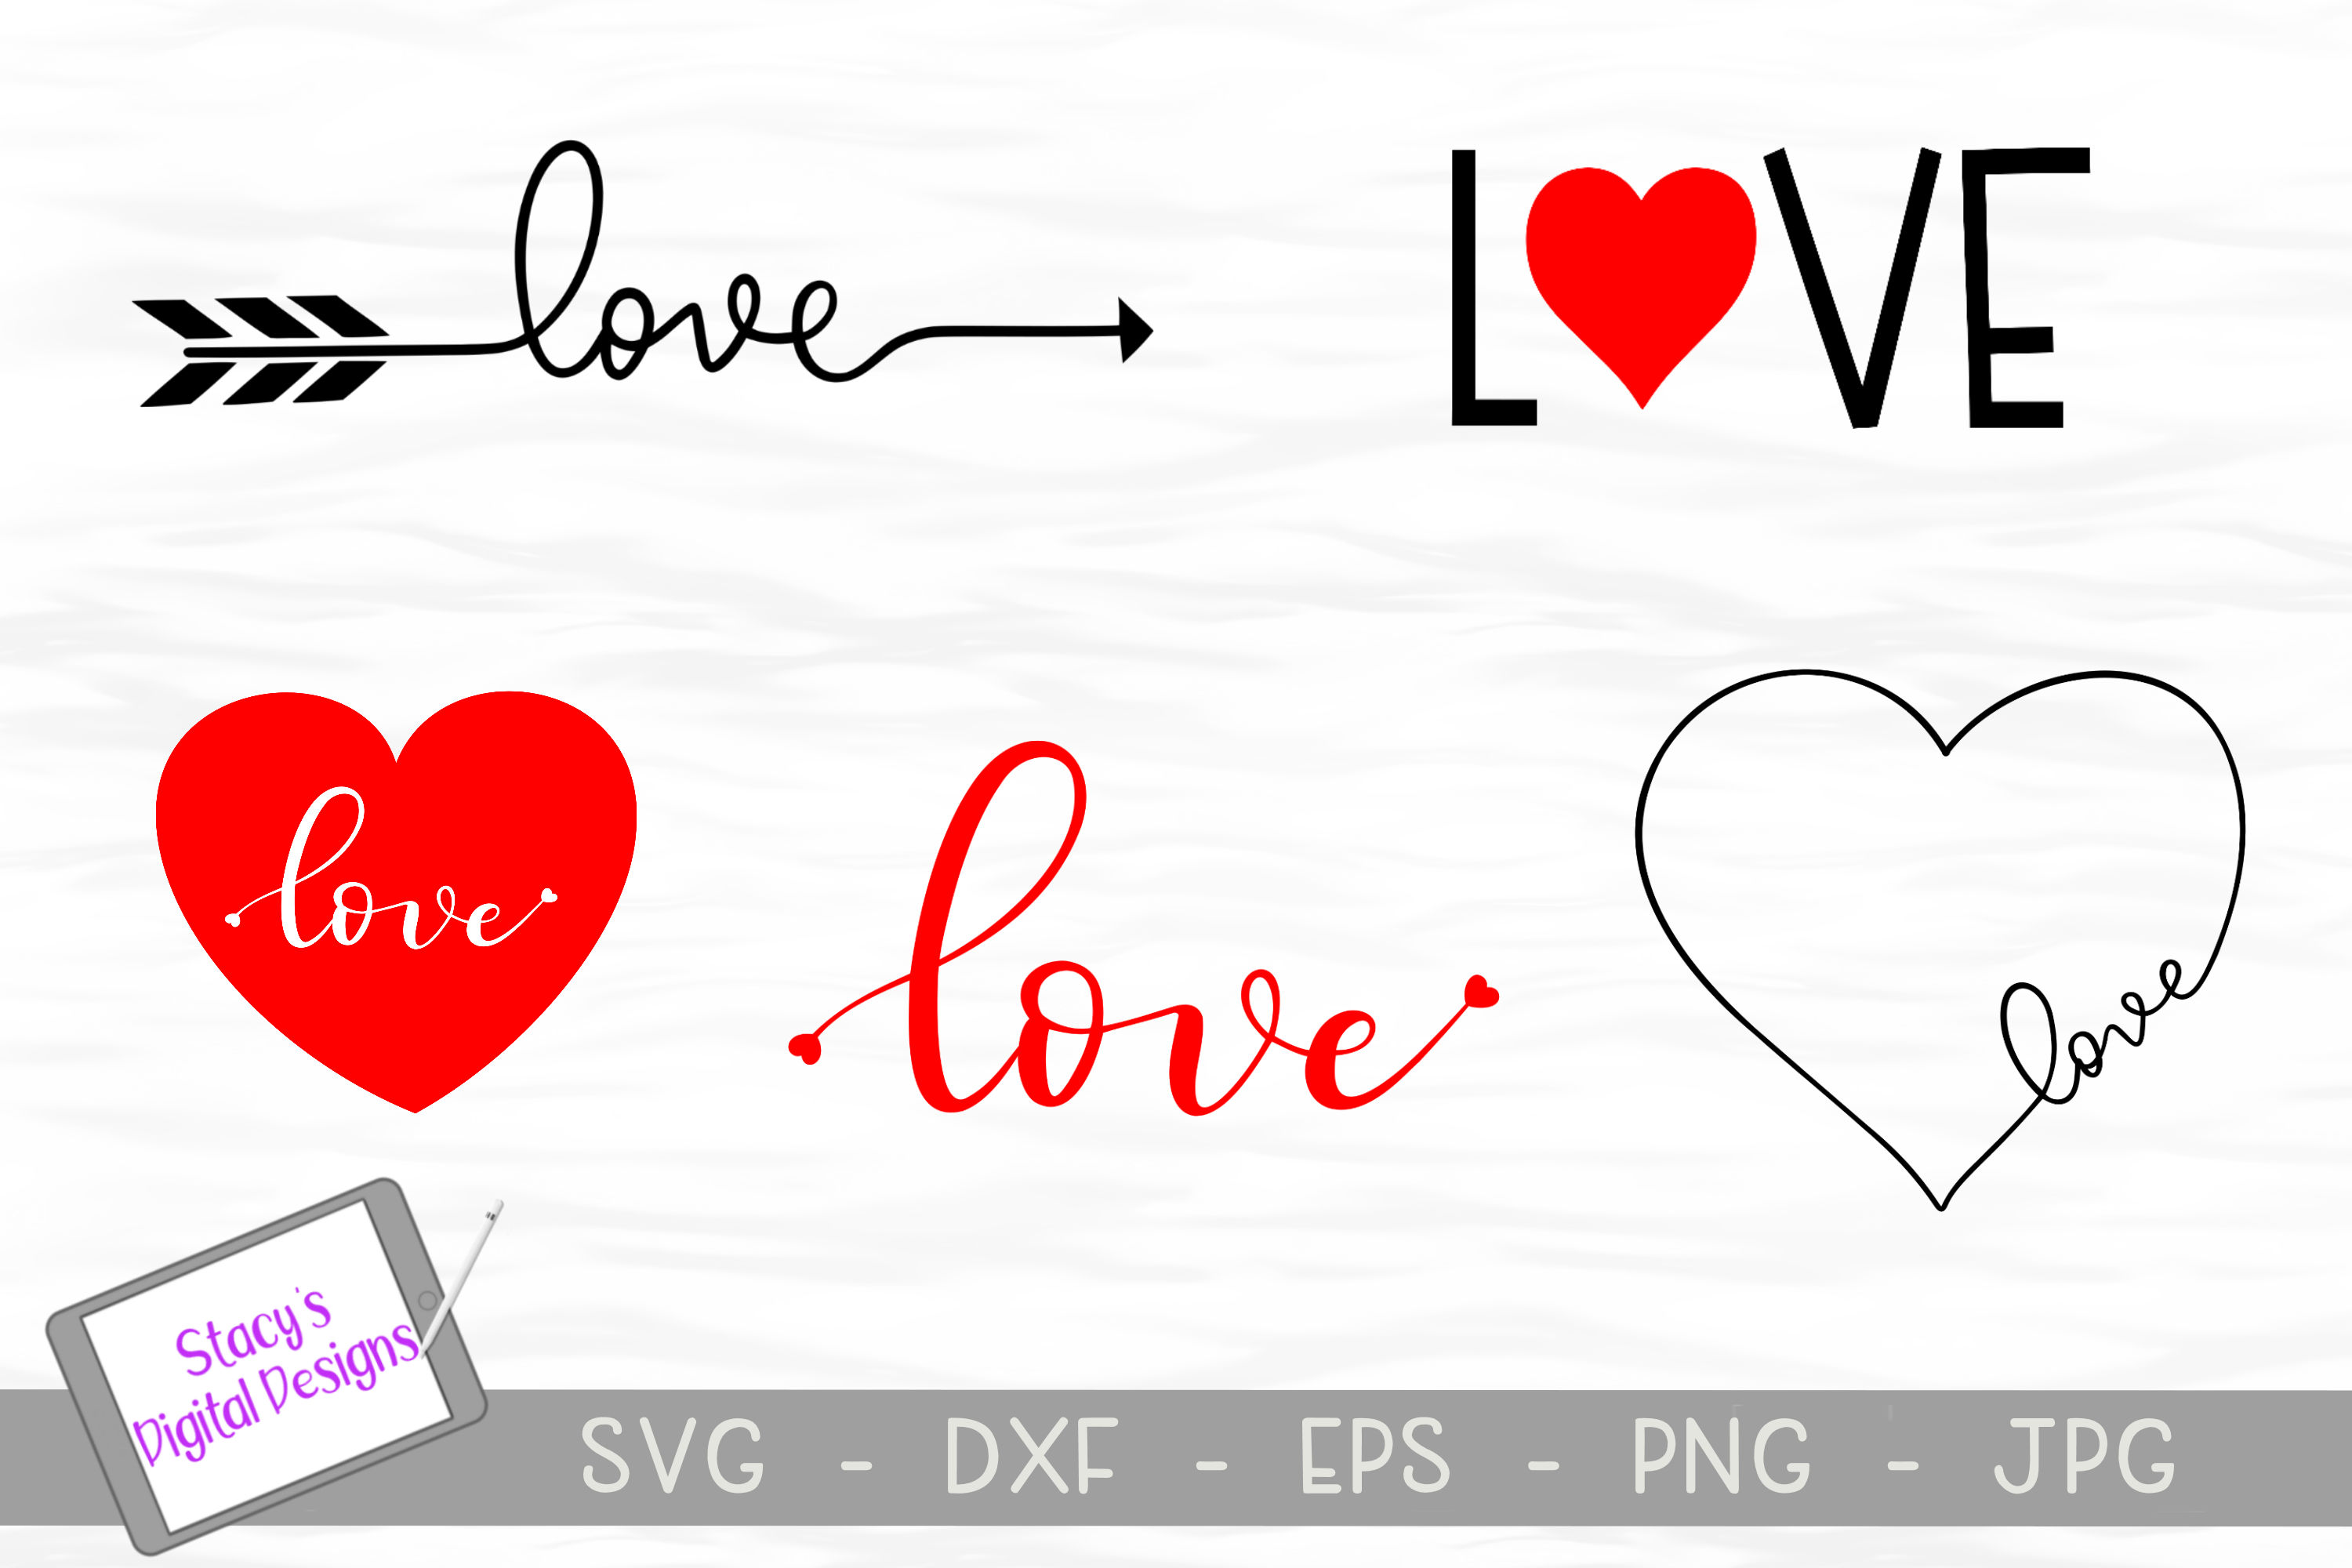 Download Free Love Bundle 5 Valentine Graphic By Stacysdigitaldesigns for Cricut Explore, Silhouette and other cutting machines.